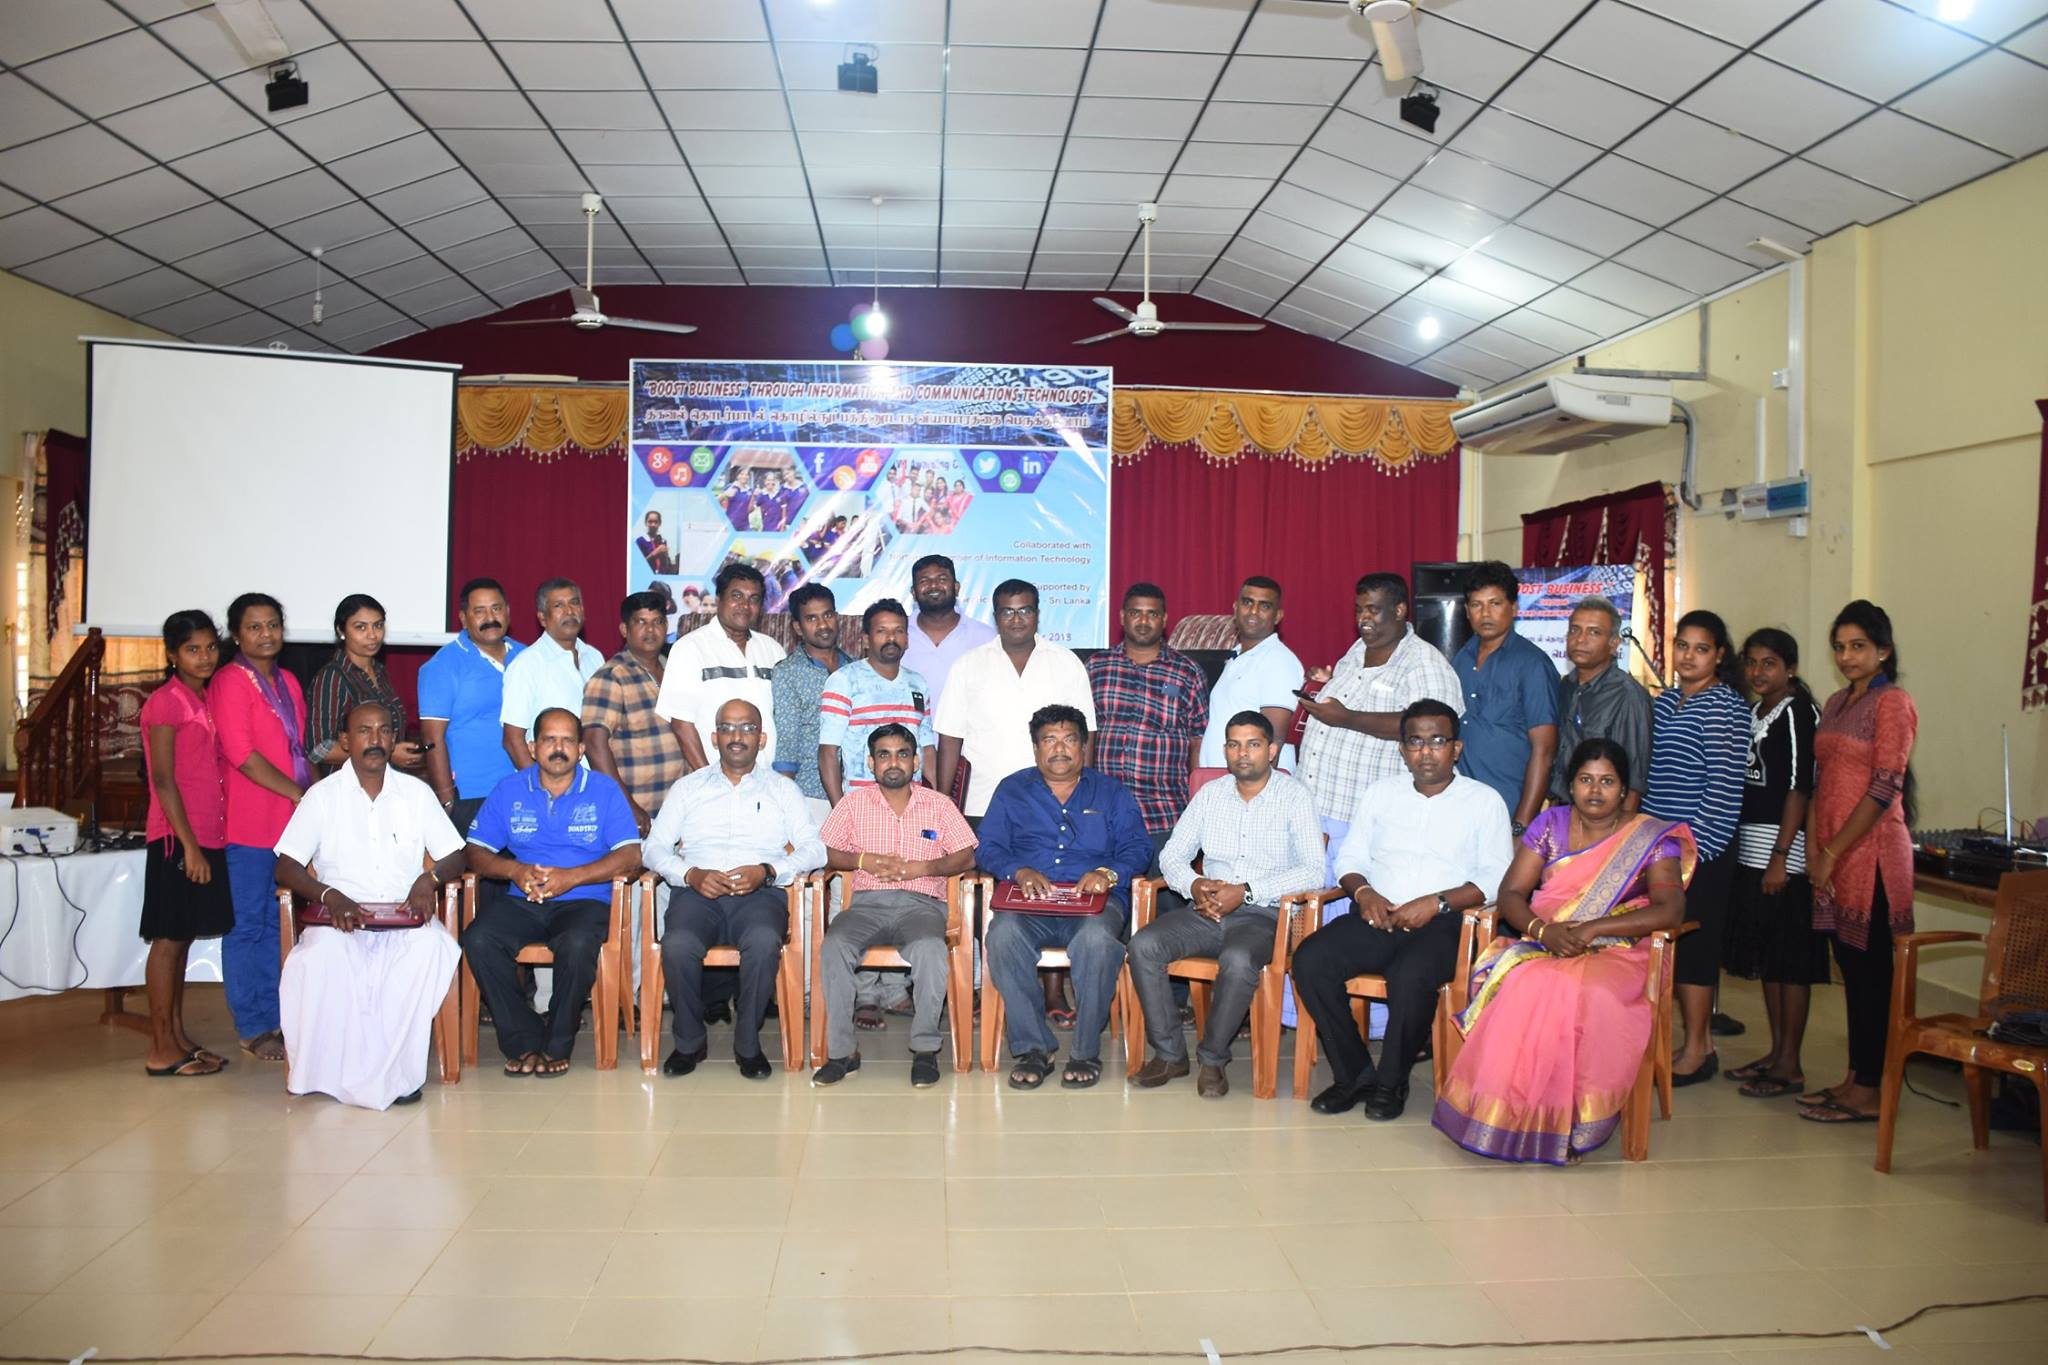 Boost Your Business through ICT Event in Kilinochchi and Mullaitivu